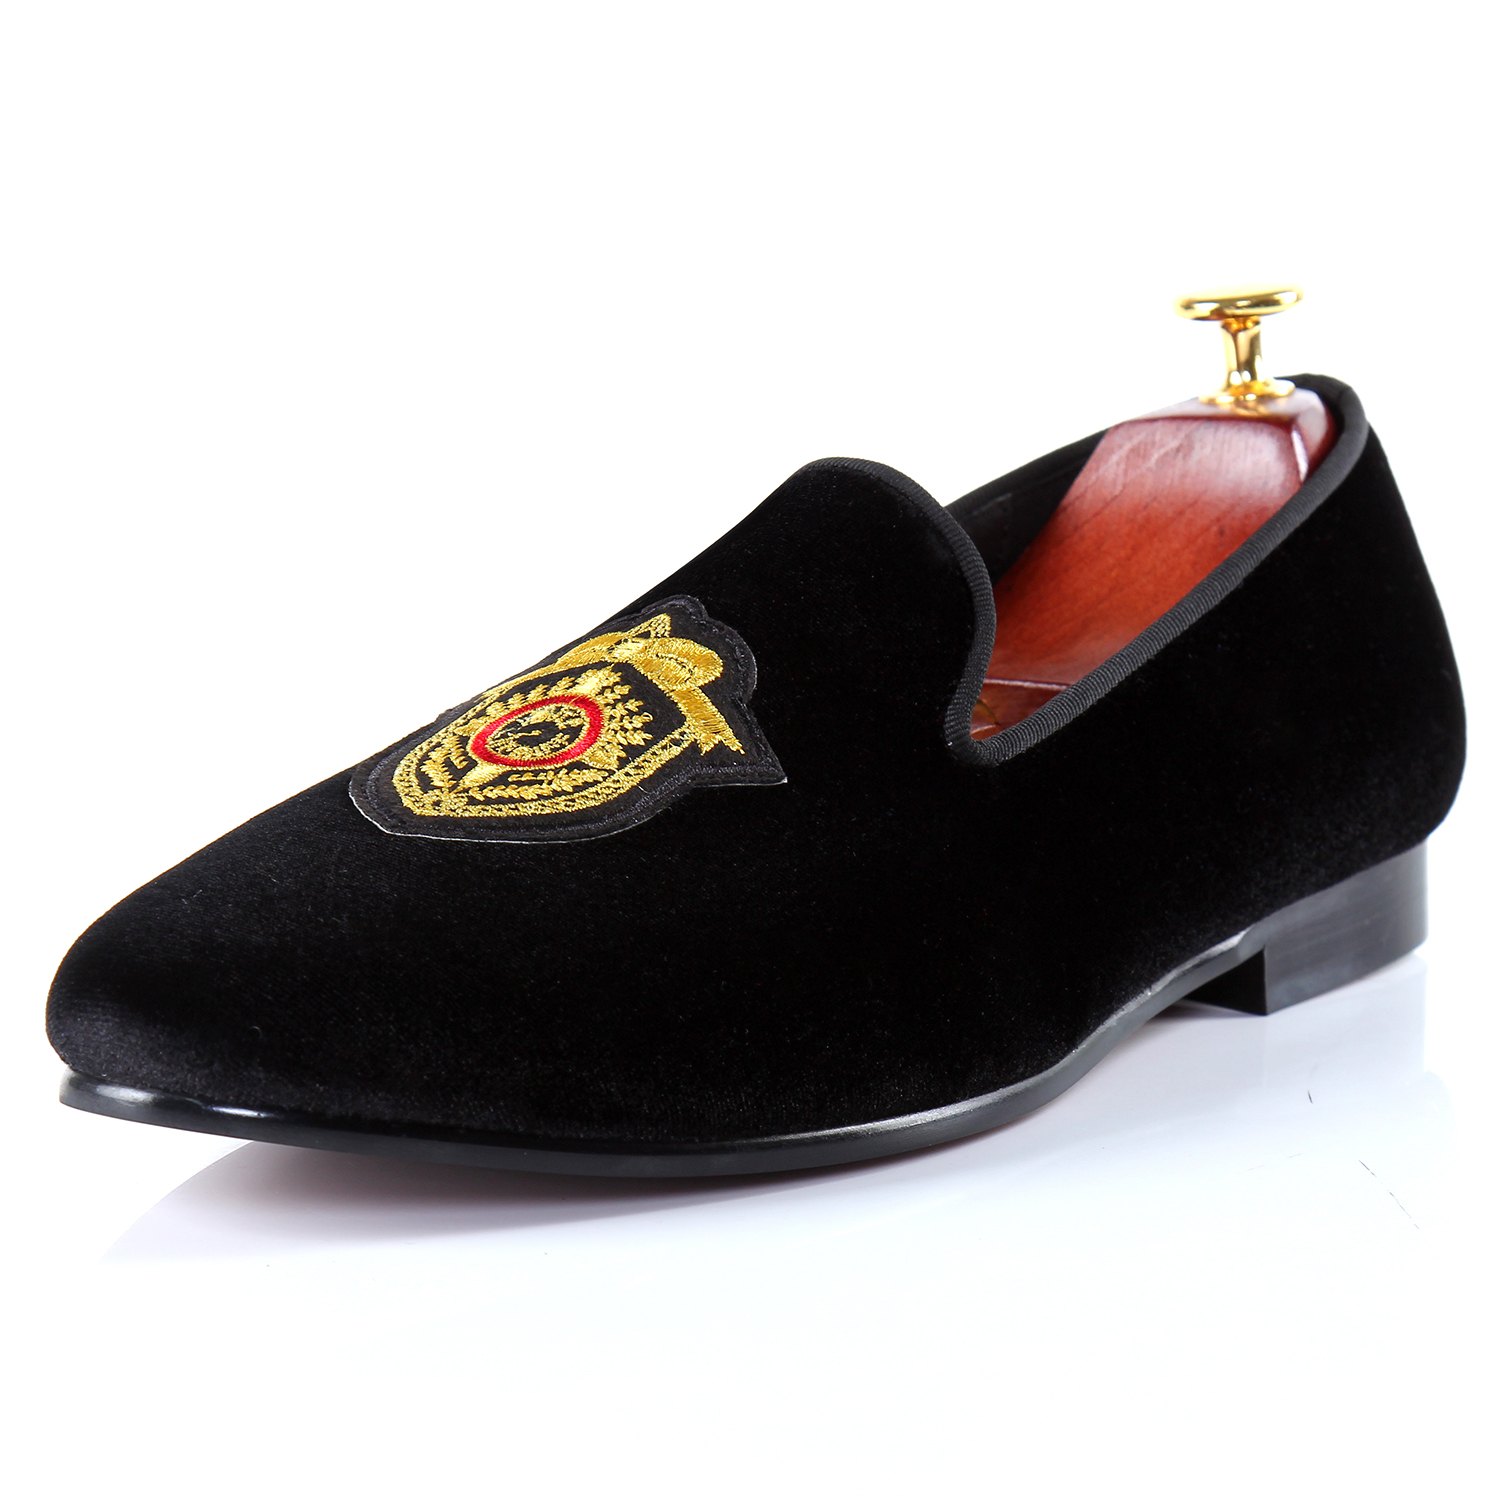 Harpelunde Leisure Shoes Black Men Loafer Shoes Velvet Badge Flats Size 7-14